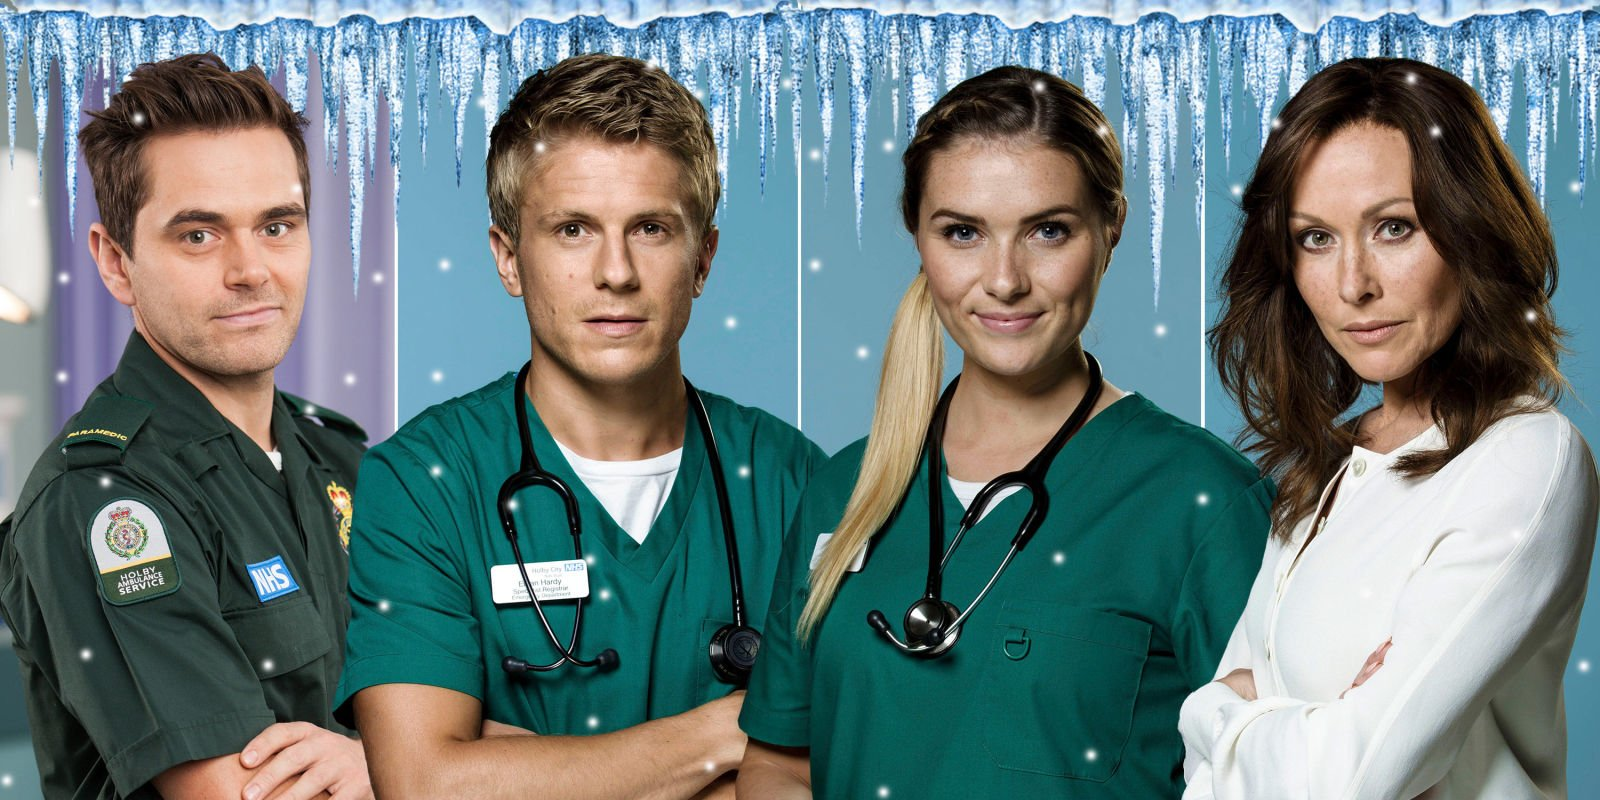 Casualty: 9 of the biggest spoilers from the show's explosive winter trailer